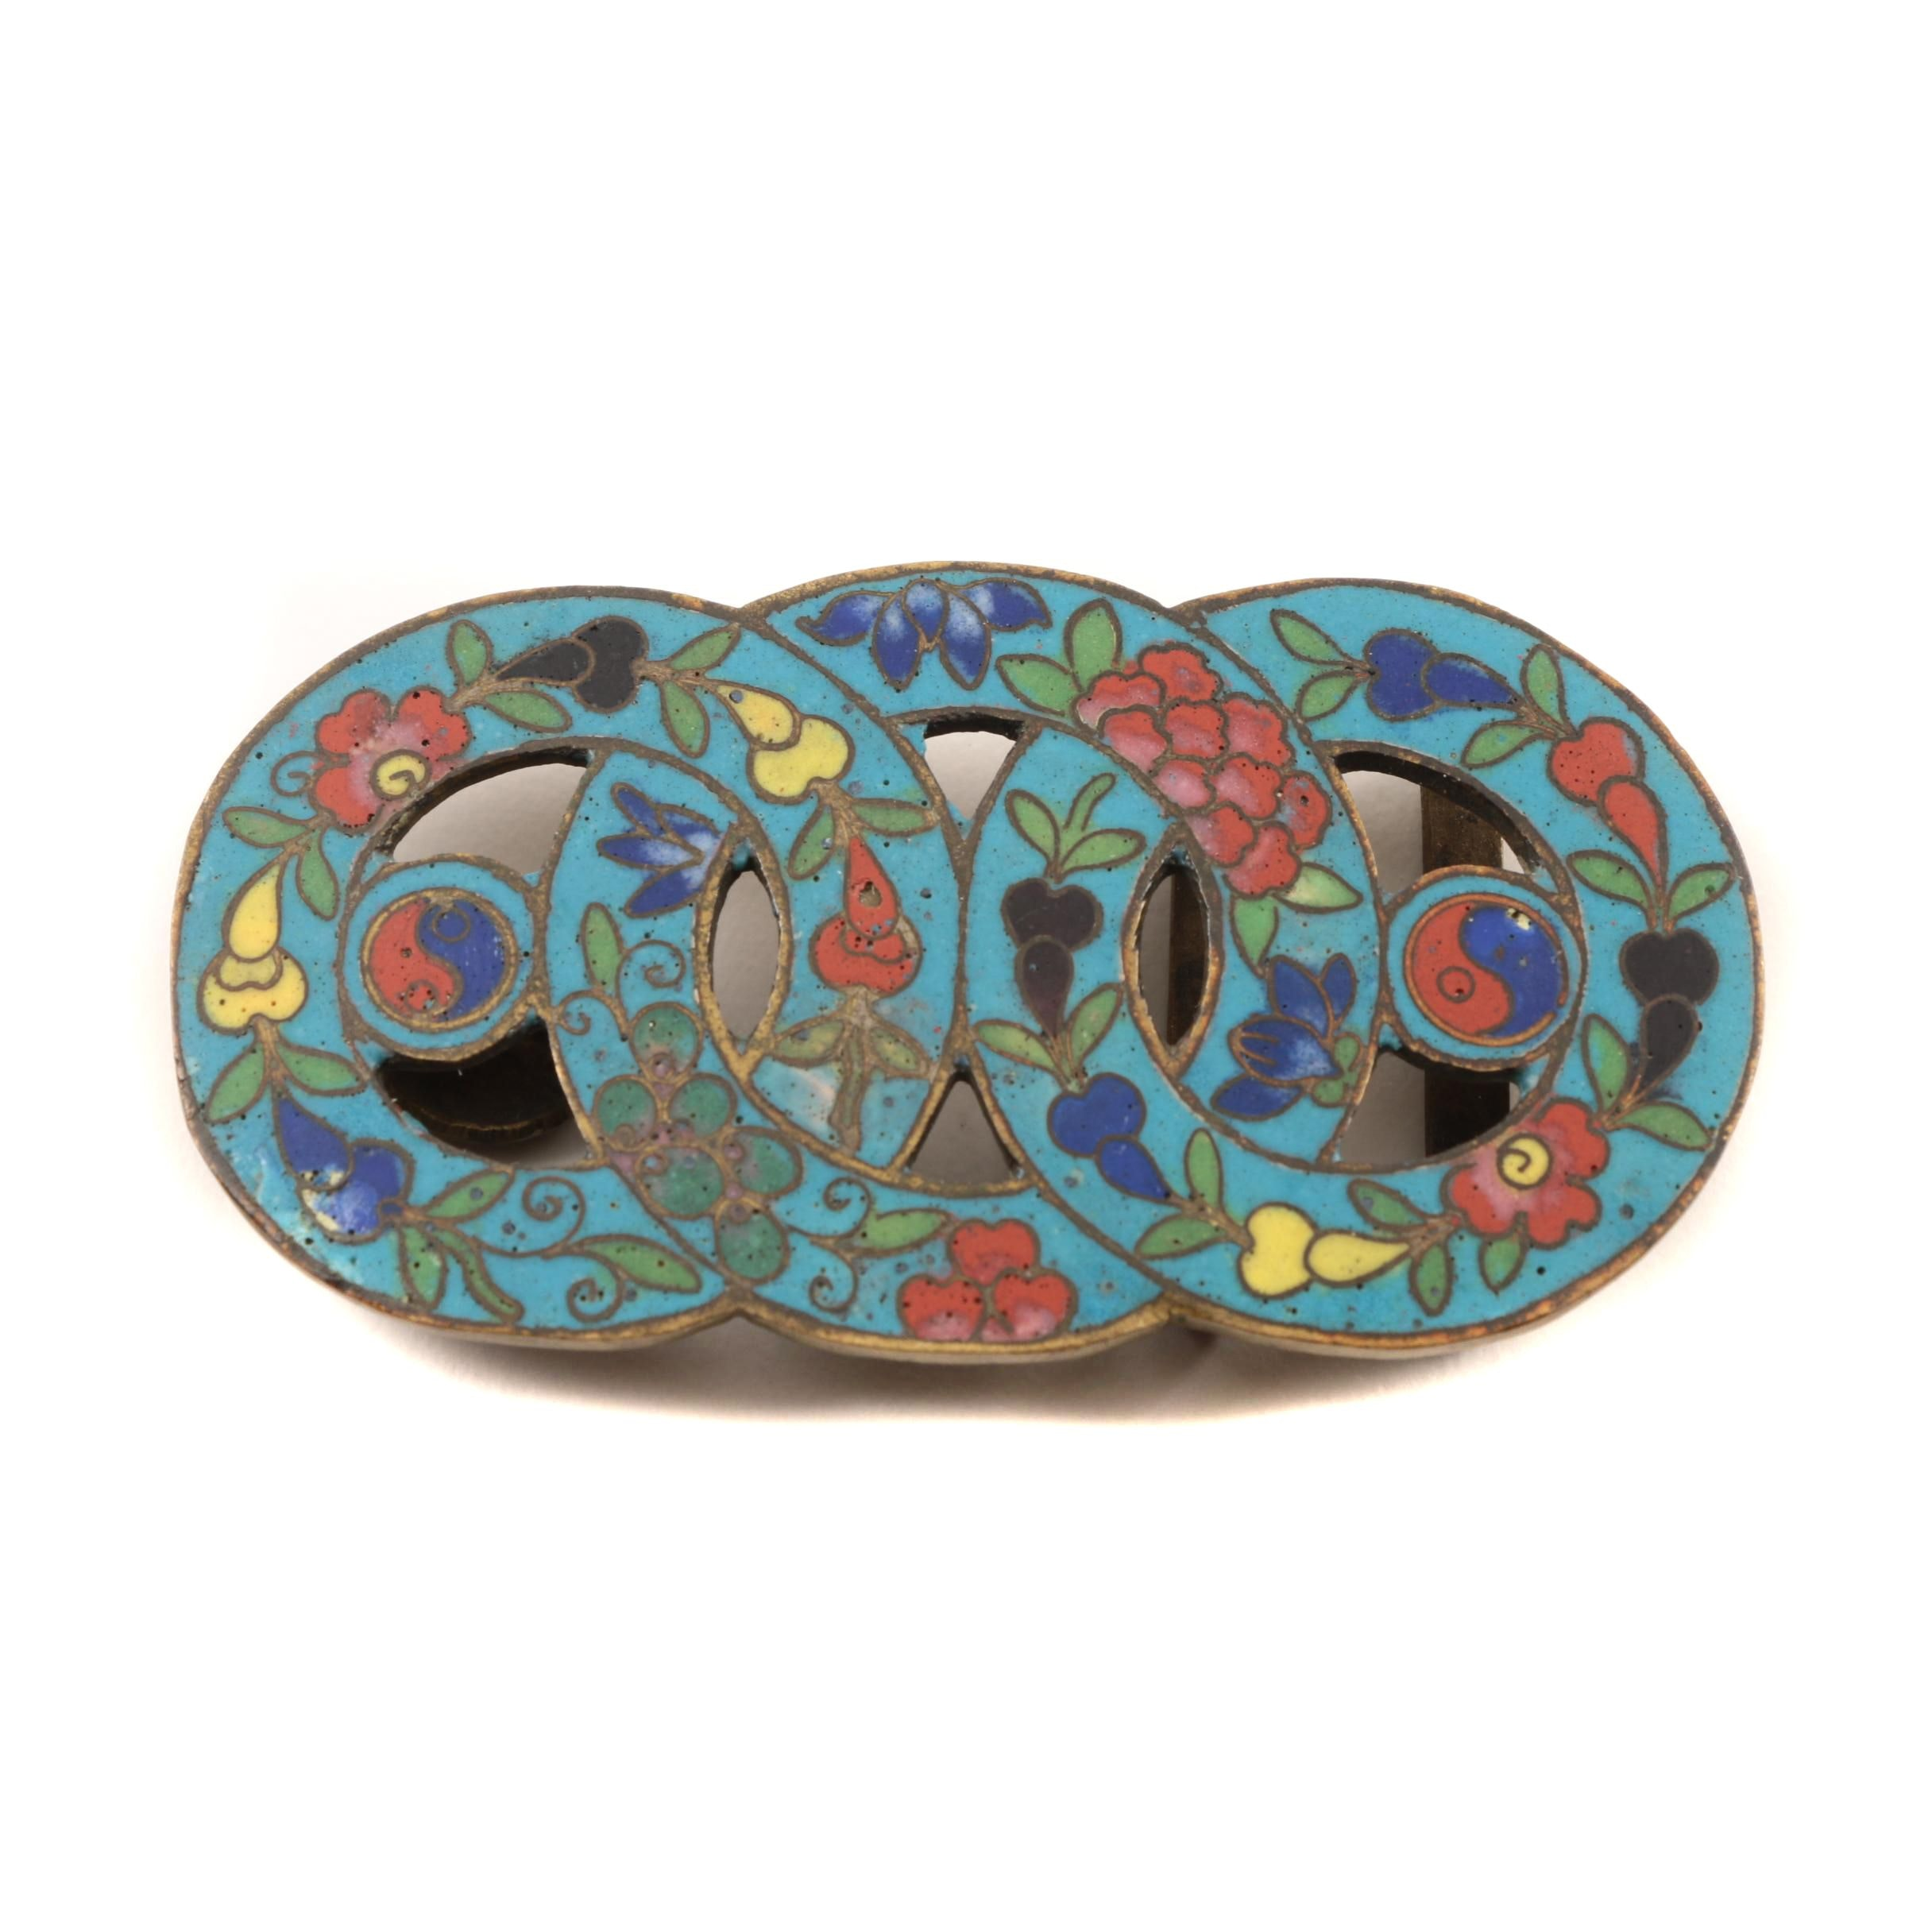 Antique Chinese Cloisonné Buckle